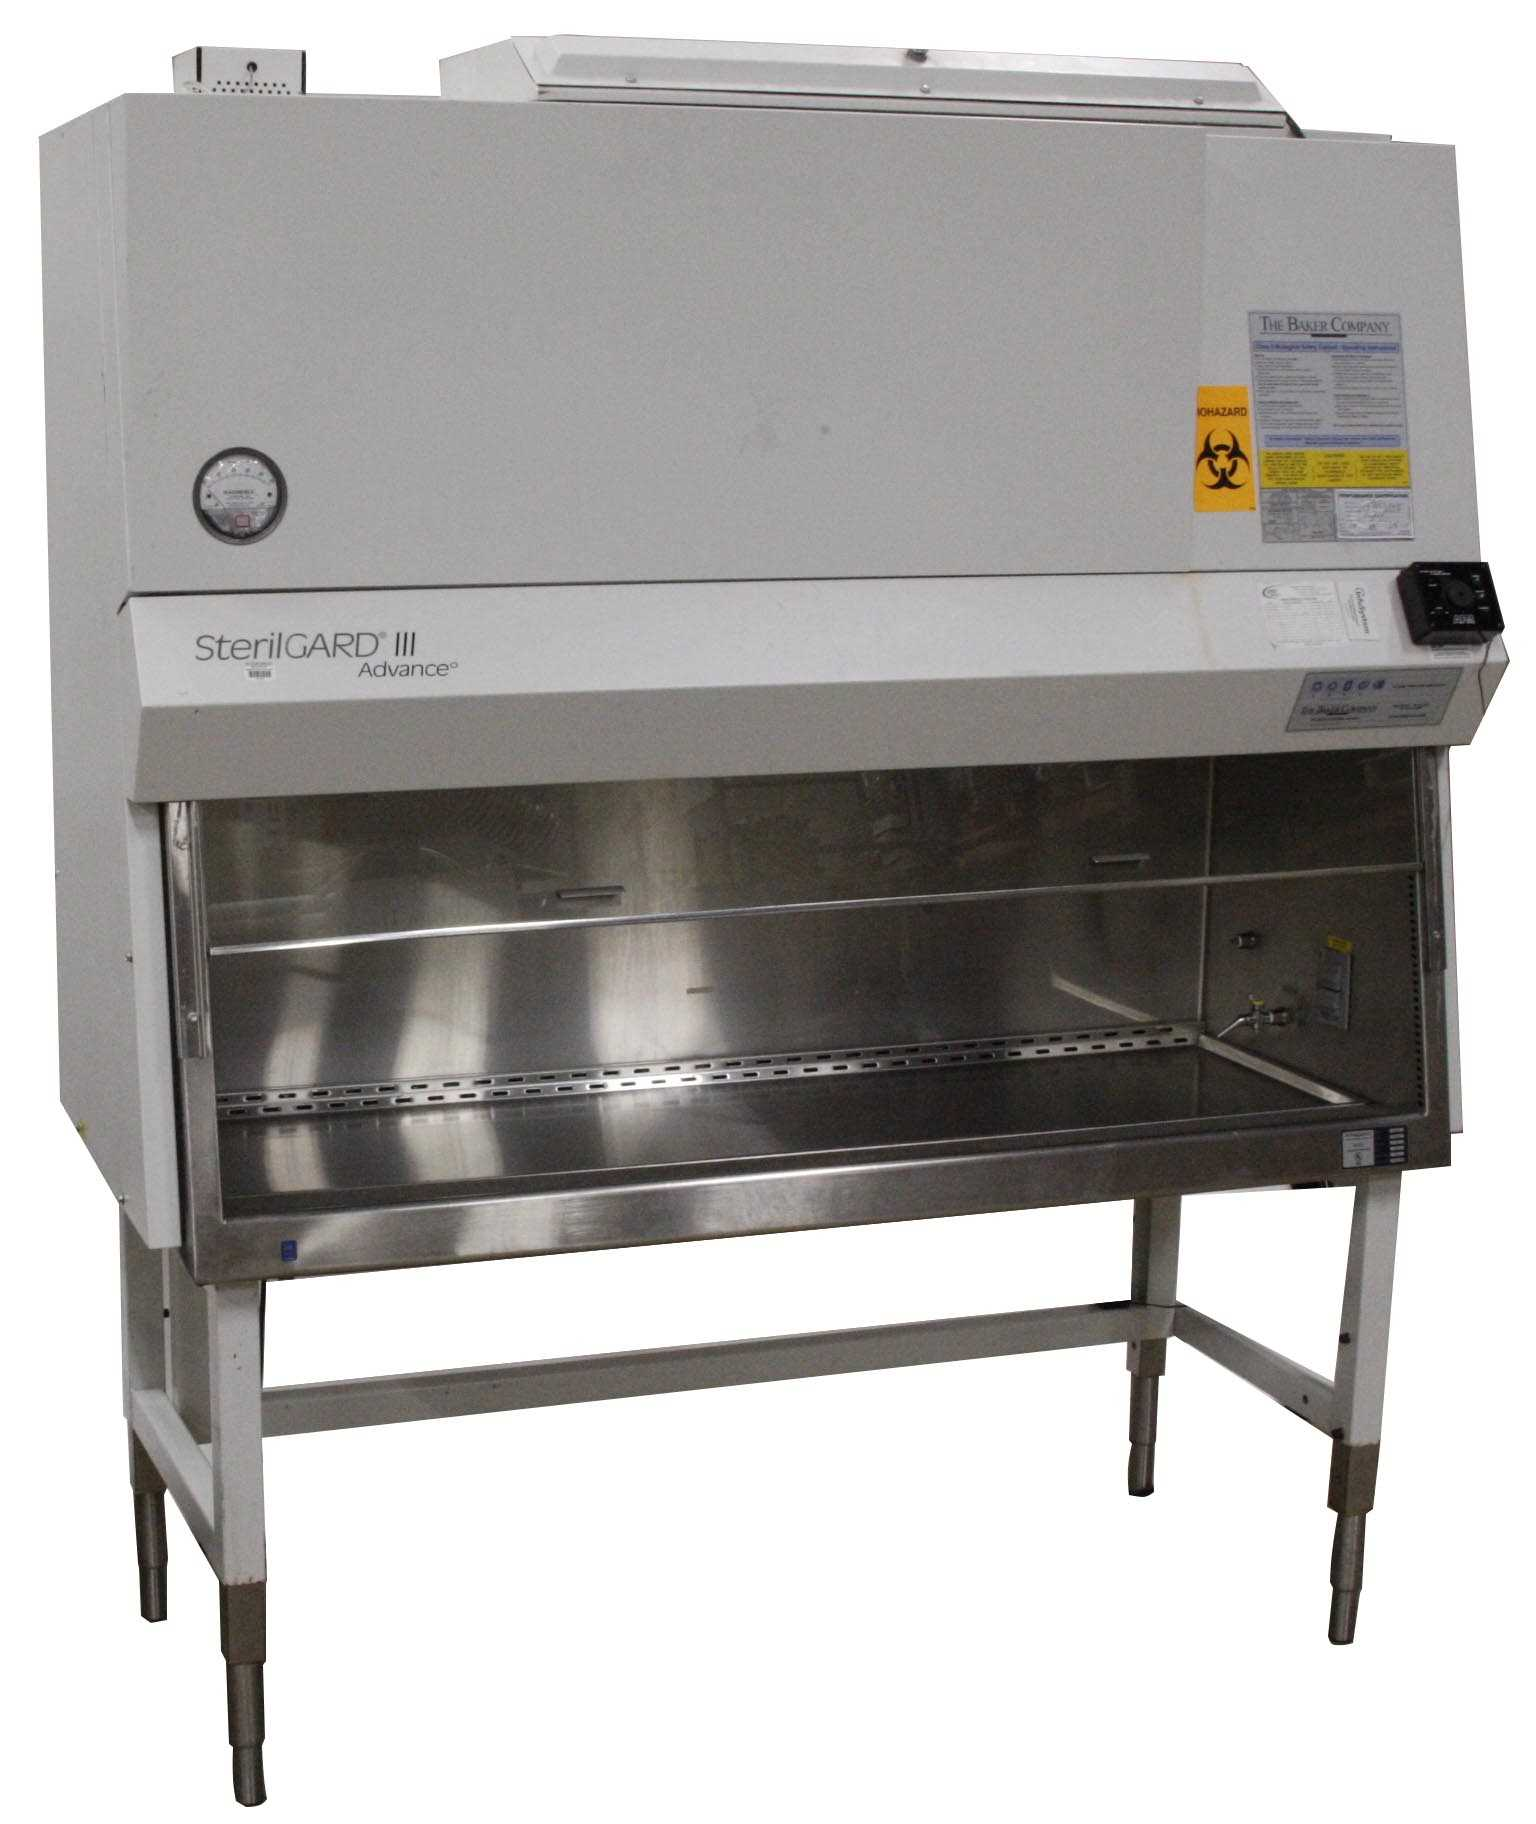 Baker Company SterilGARD III Biological Fume Hood Model SG603